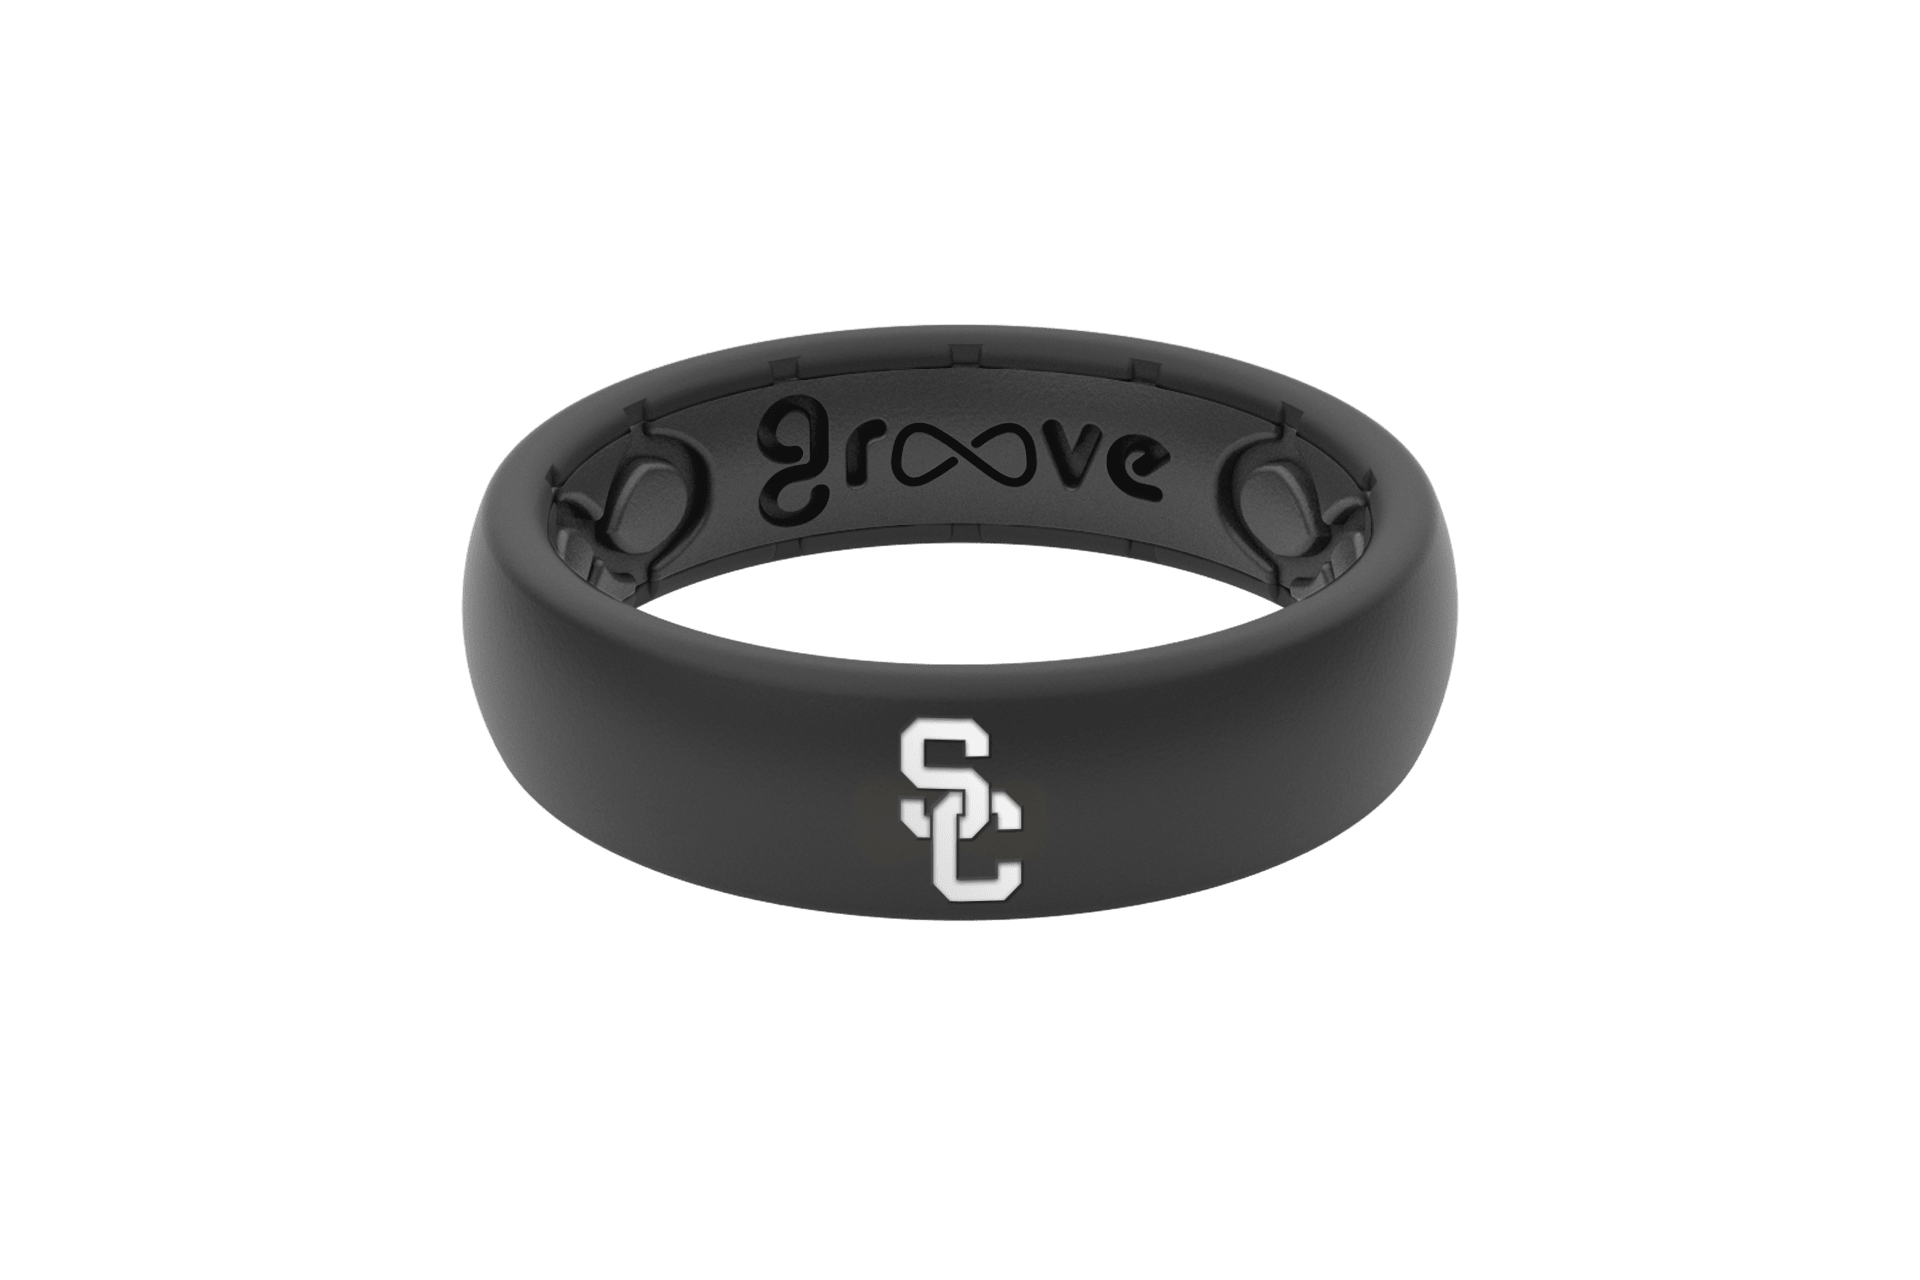 Thin College Southern California - Groove Life Silicone Wedding Rings